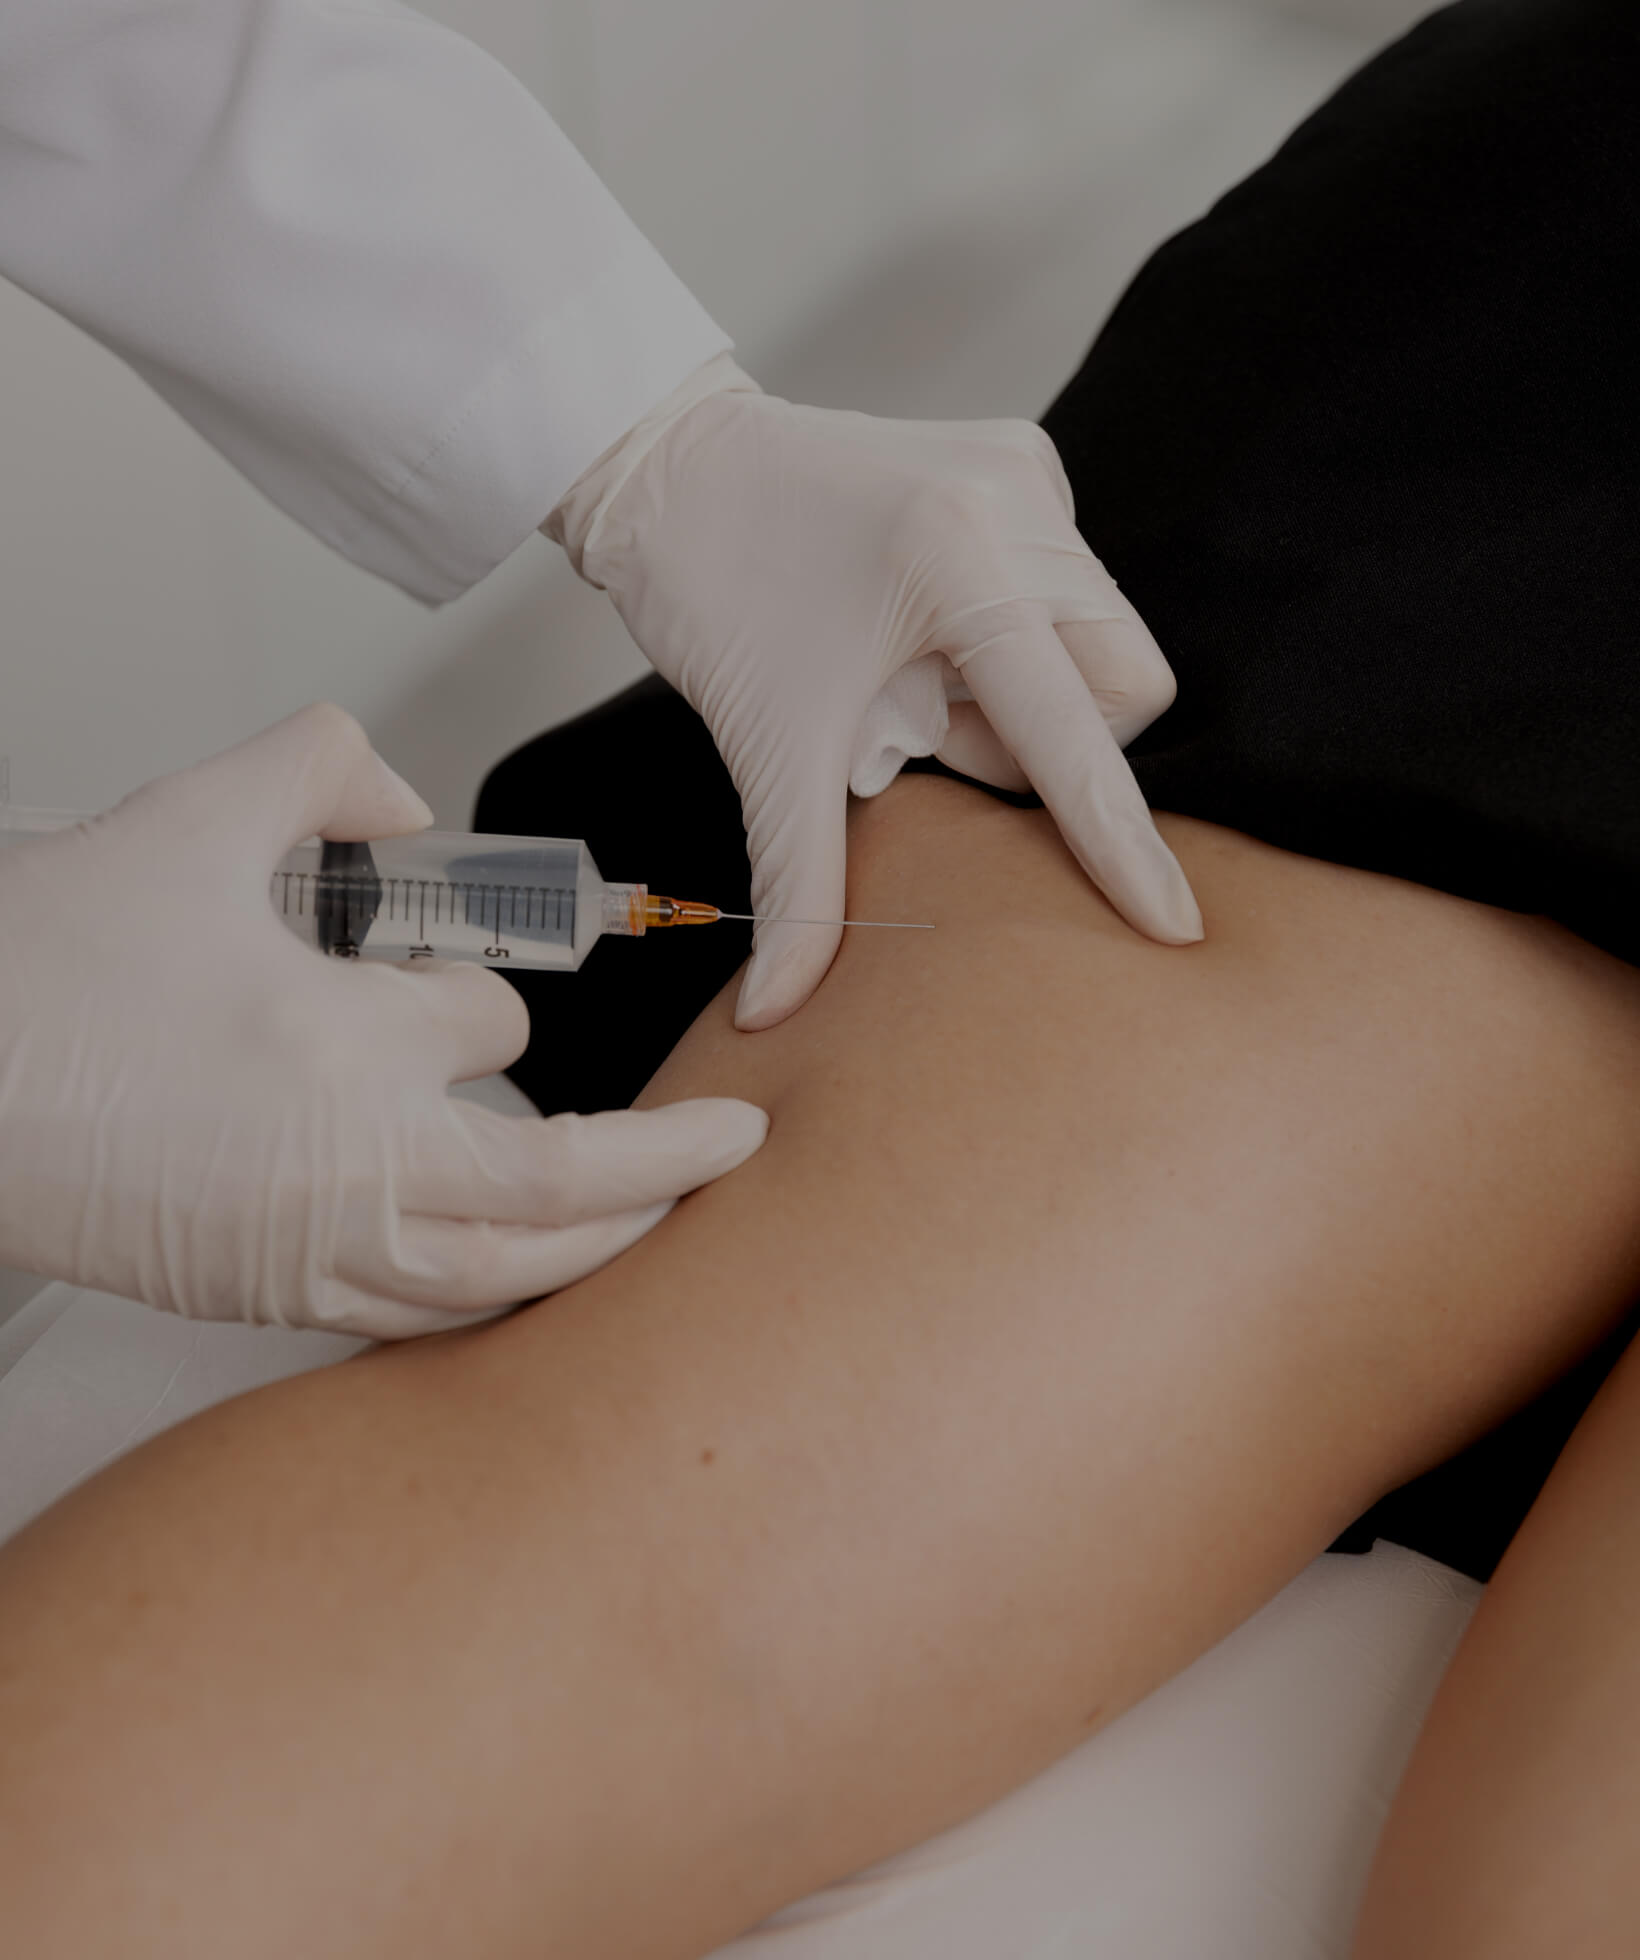 A doctor at Clinique Chloé performing Sculptra injections in a female patient's thighs